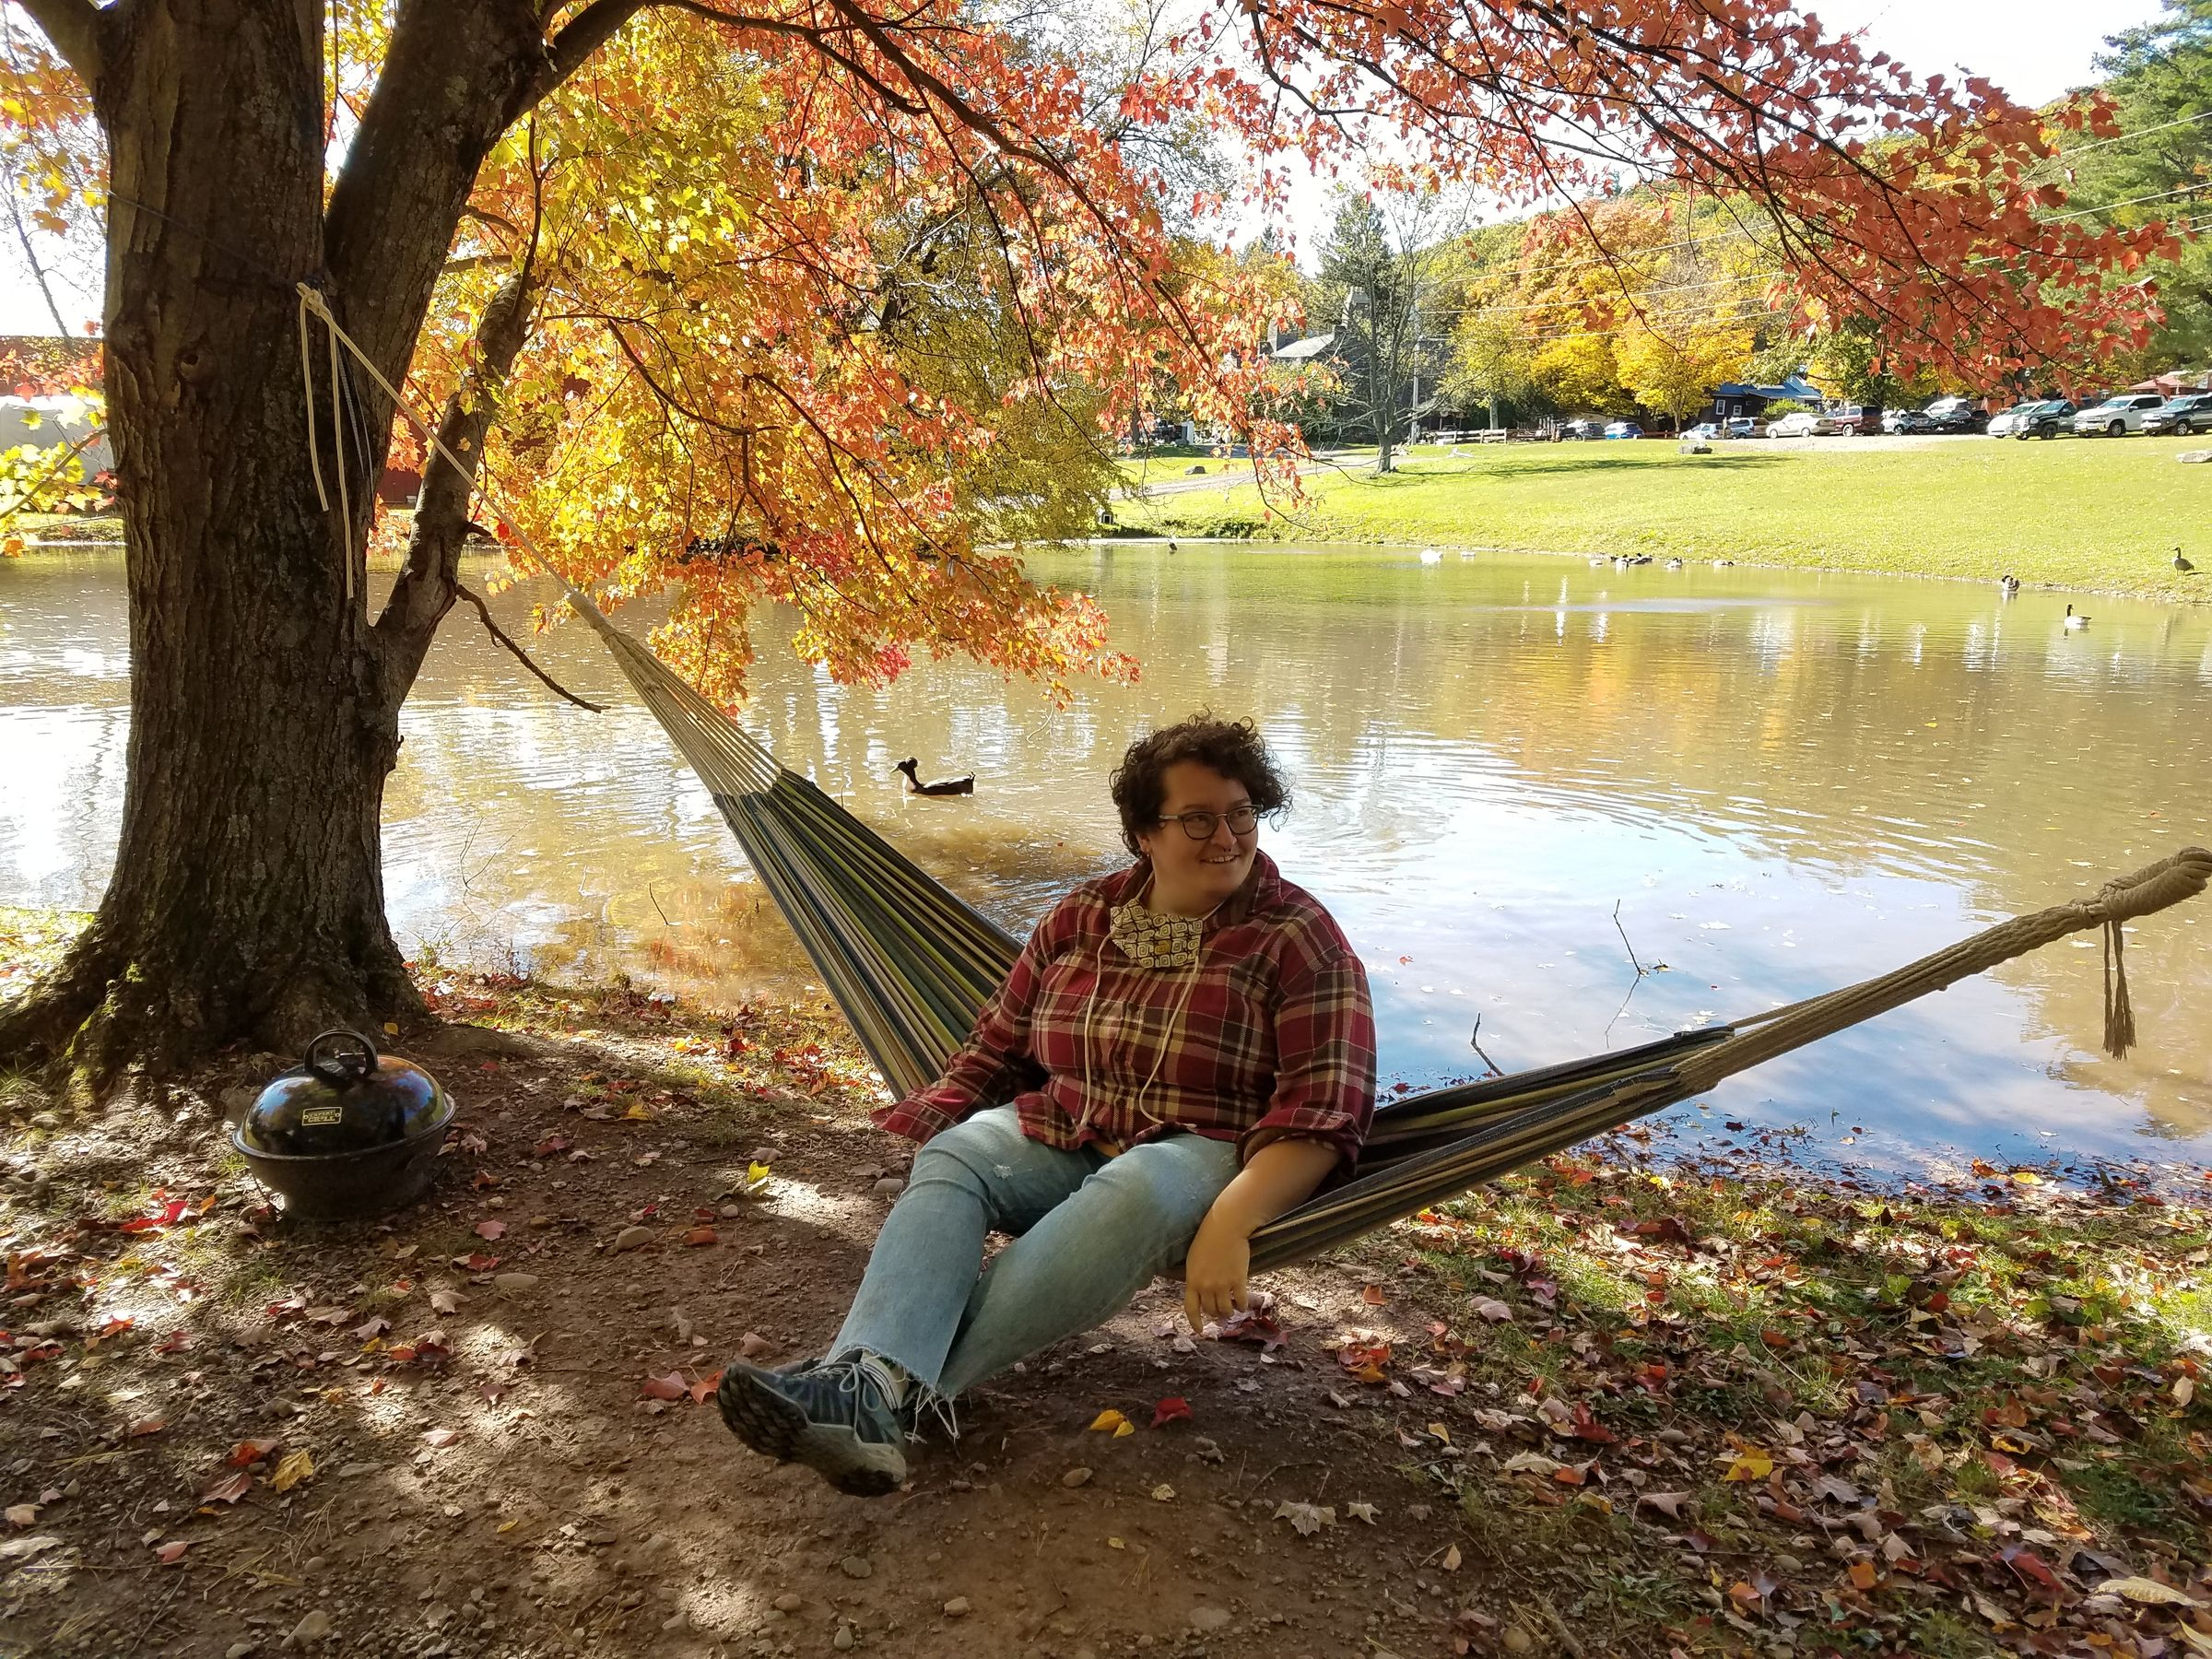 Photo of a person wearing jeans and a plaid flannel shirt, sitting on a hammock strung from two trees at the edge of a pond. The tree's leaves range from yellow to bright red. A few geese swim along the water's opposite bank.